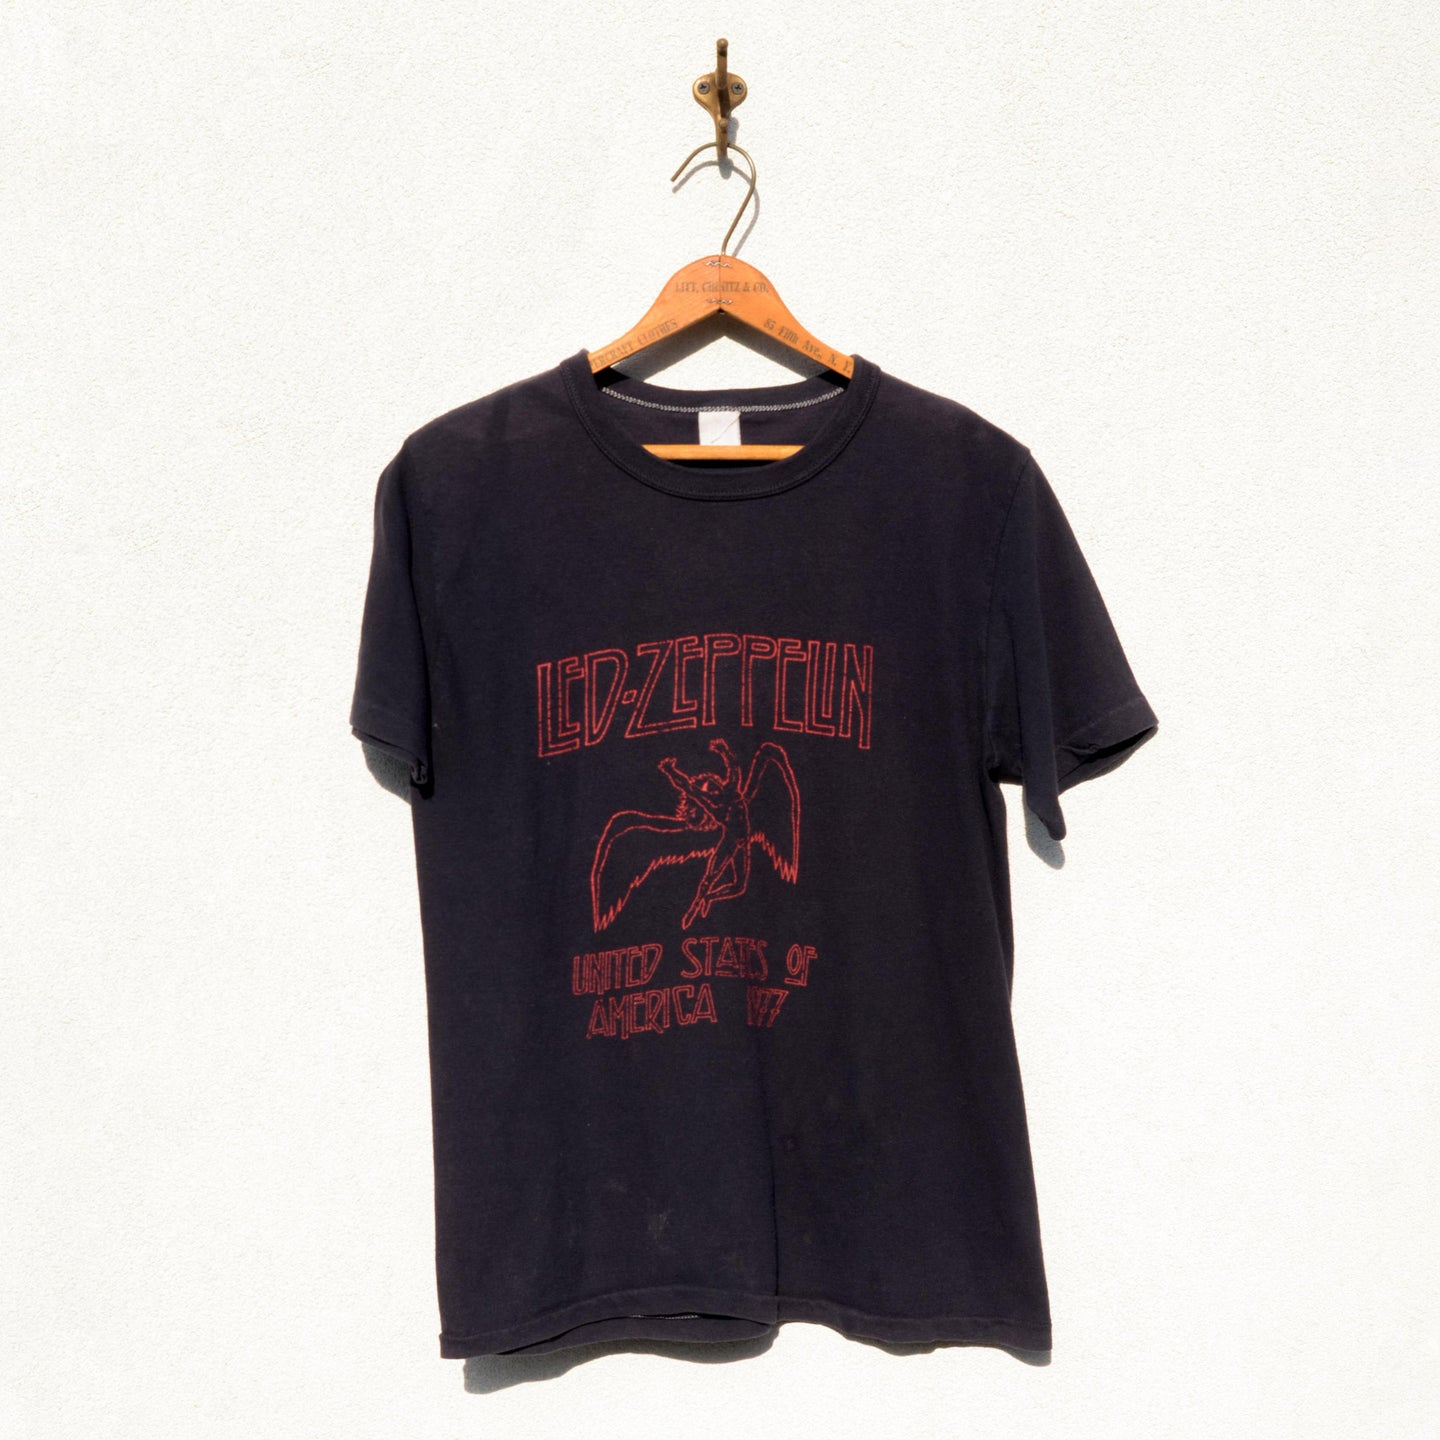 Unknown Brand - Led Zeppelin 1977 U.S Tour Tee Shirt